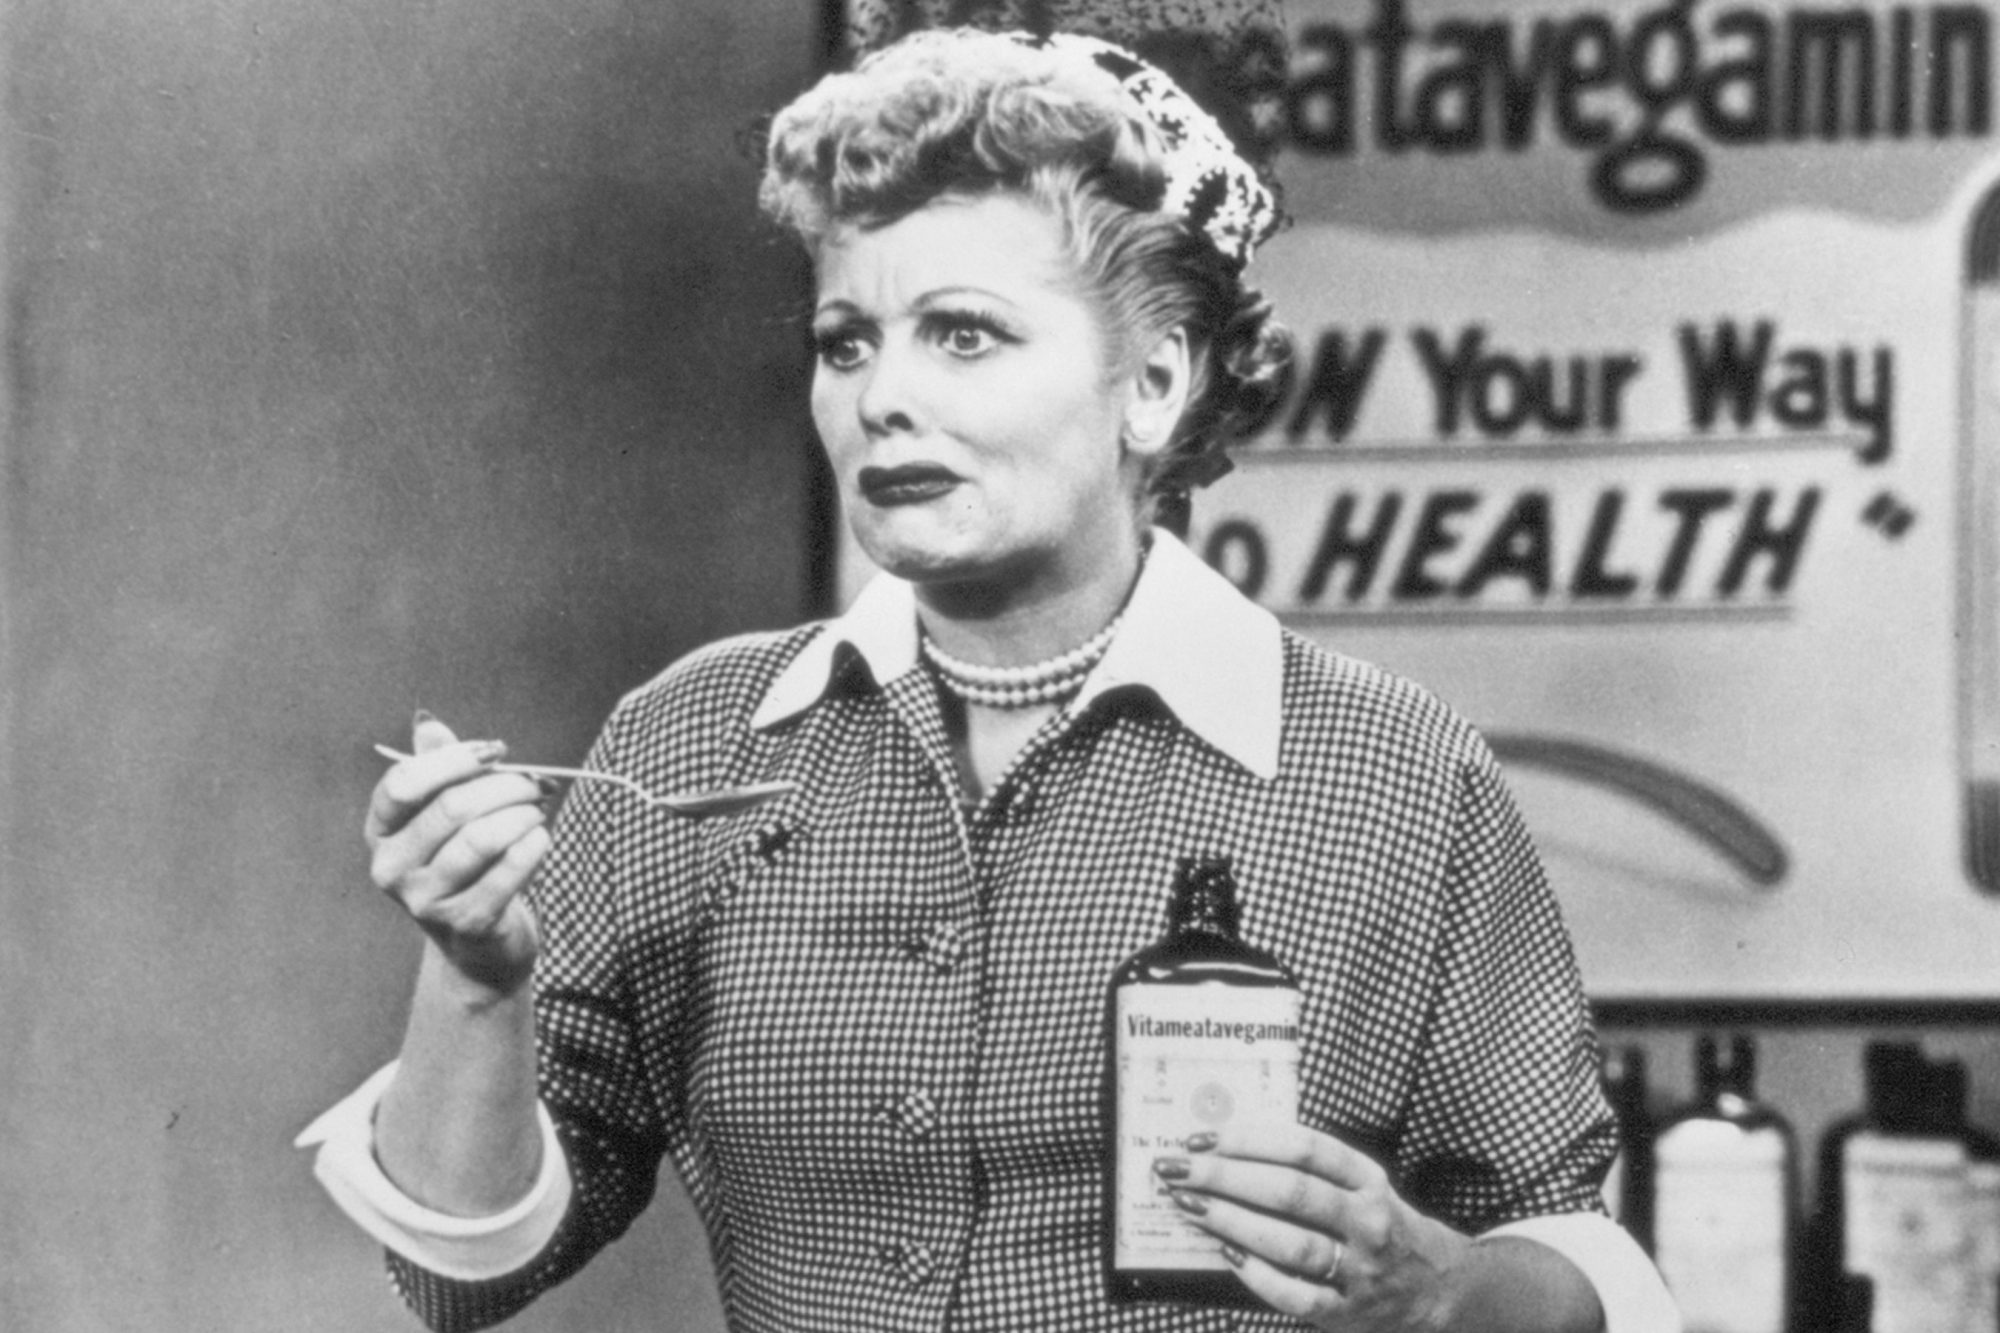 Still from the 1950s CBS television sitcom 'I Love Lucy,' episode 30, 'Lucy Does a Television Commercial' features American actress Lucille Ball (1911 - 1989) as she portrays Lucy Ricardo attempting to film an advertisement for Vitameatavegamin,...